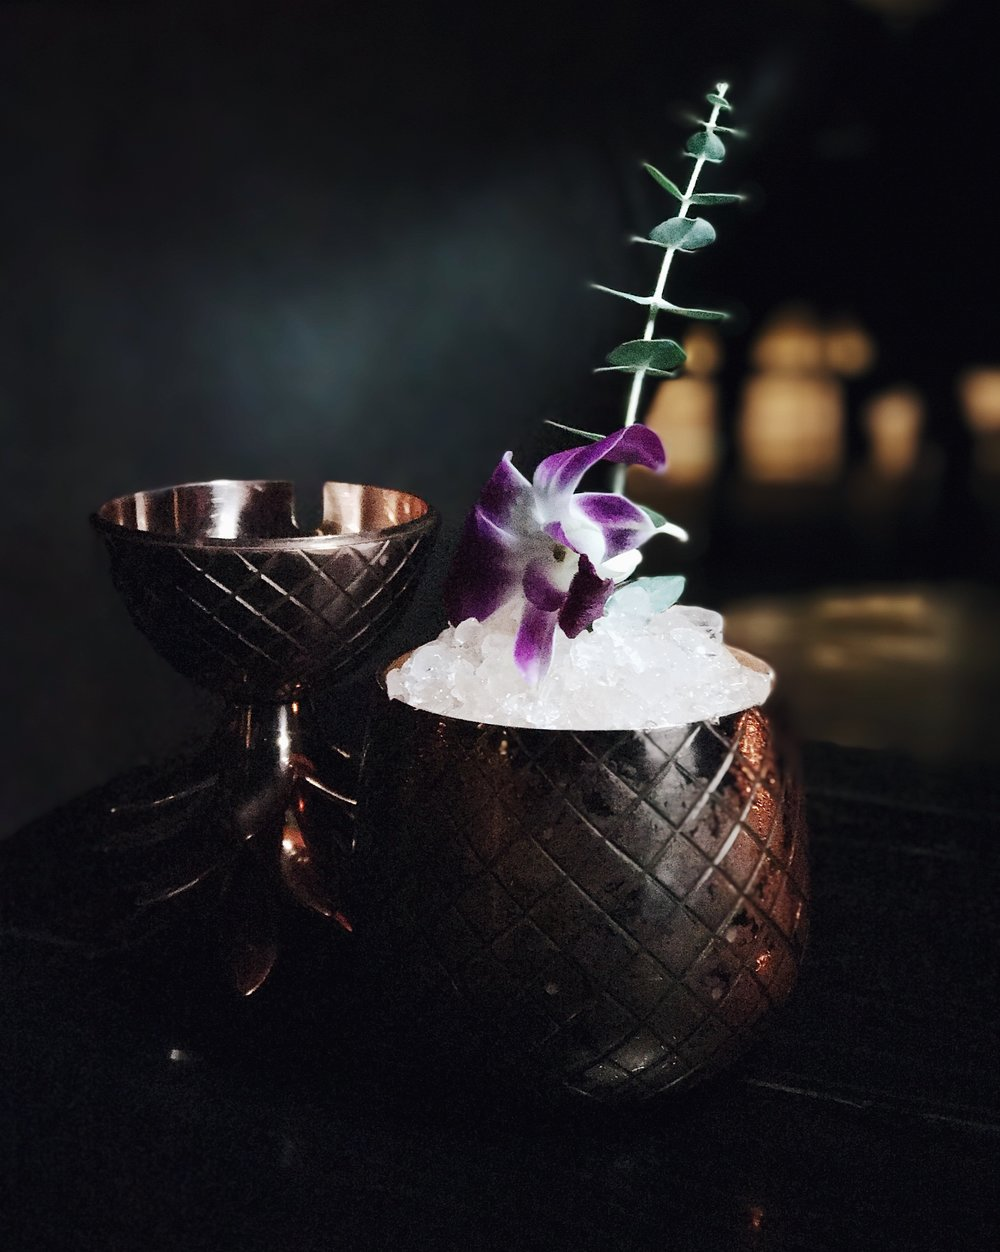 The Seana cocktail with features passion fruit and is served in a pineapple goblet.